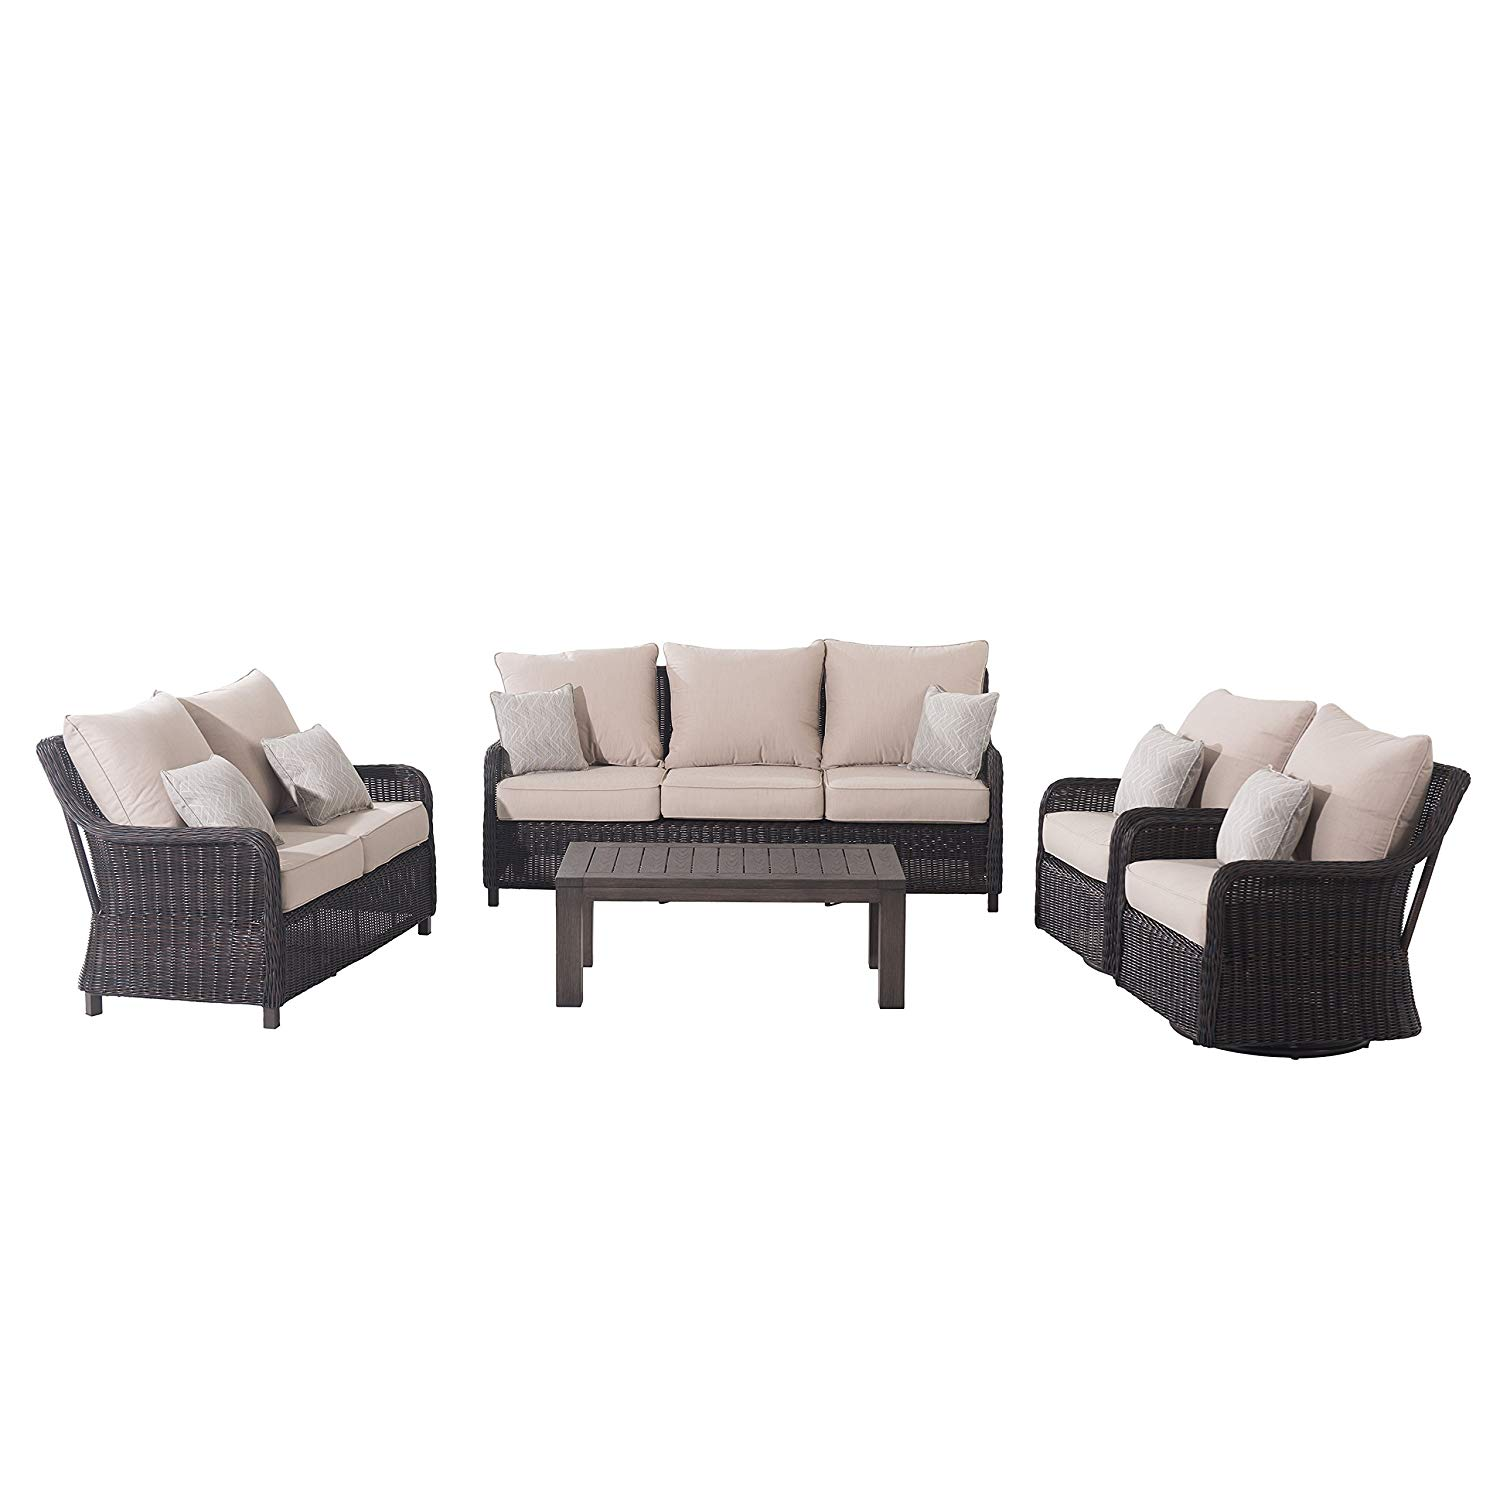 Sunjoy S-DN2205SST-A Dighton 5 Piece Deep Seating Set, Brown and Beige